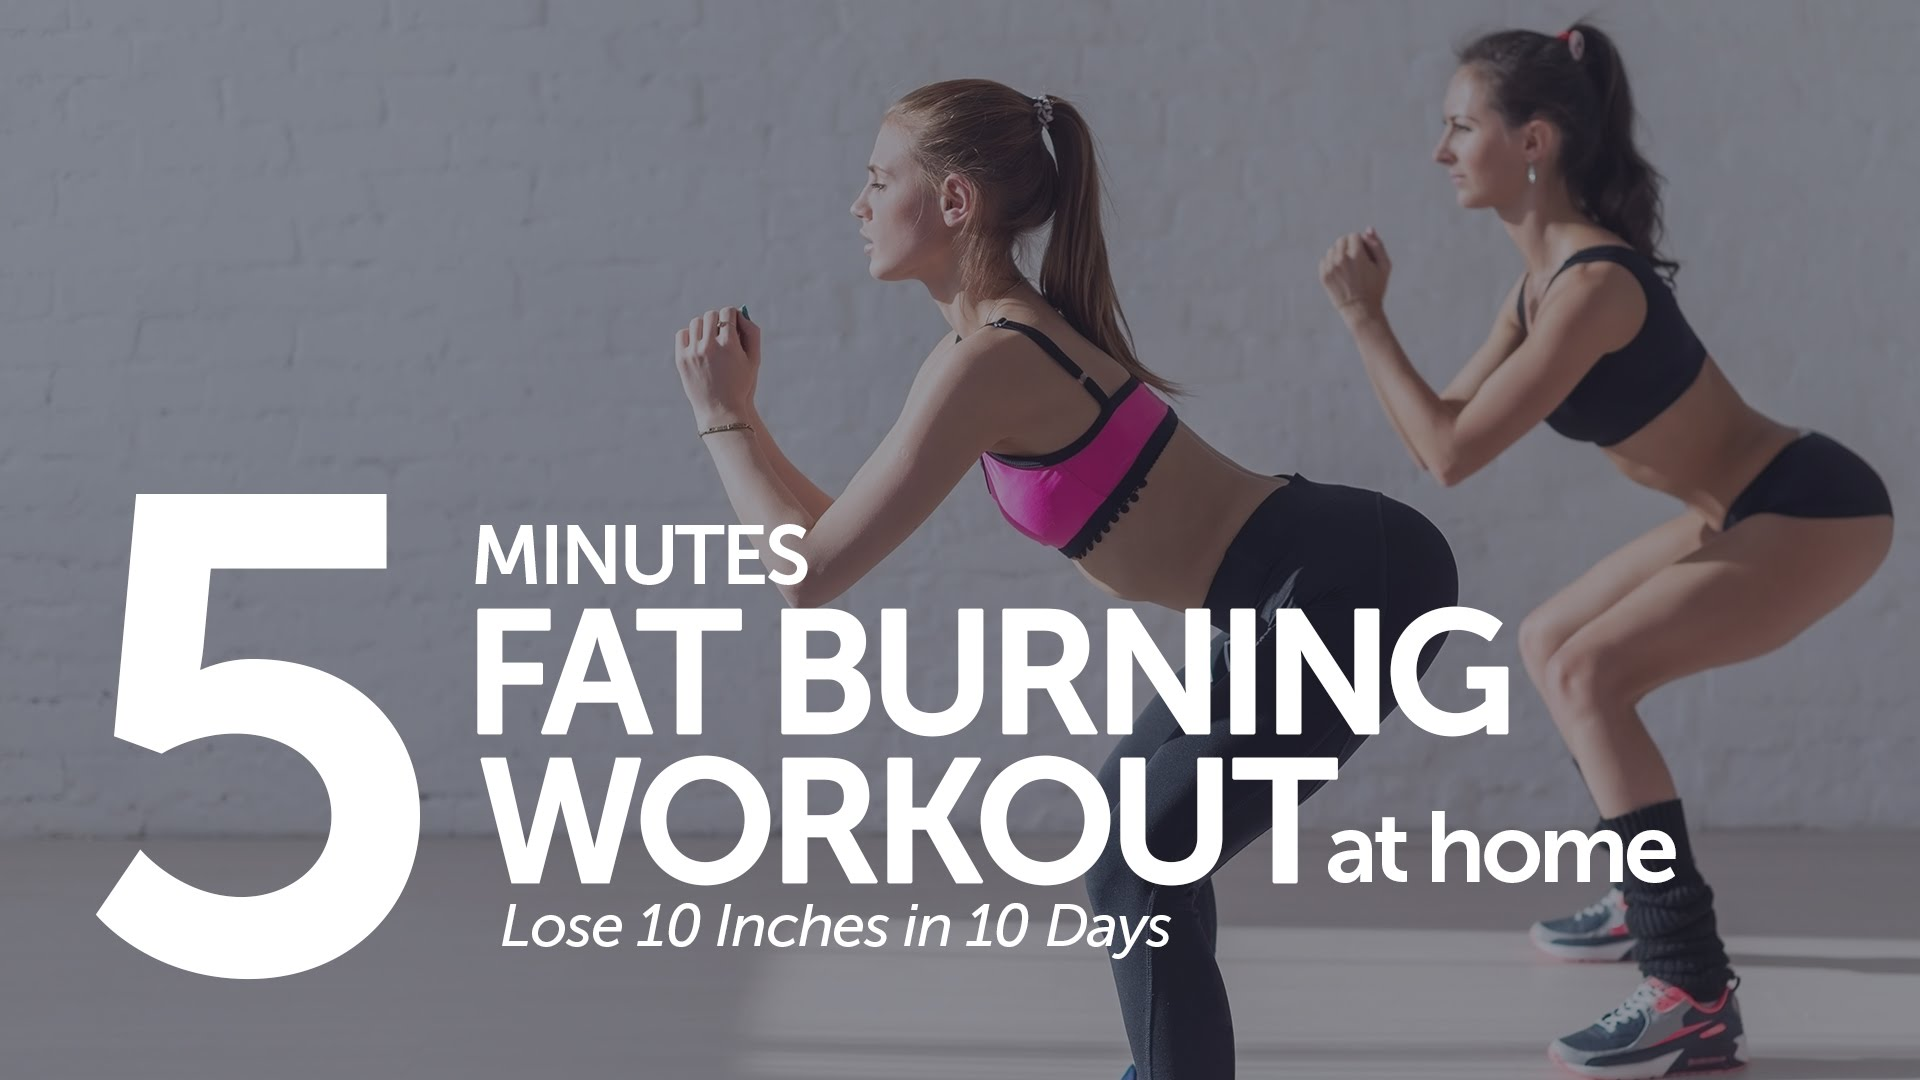 5 Minute Cardio Workout To Lose Belly Fat | Workout | Men ...